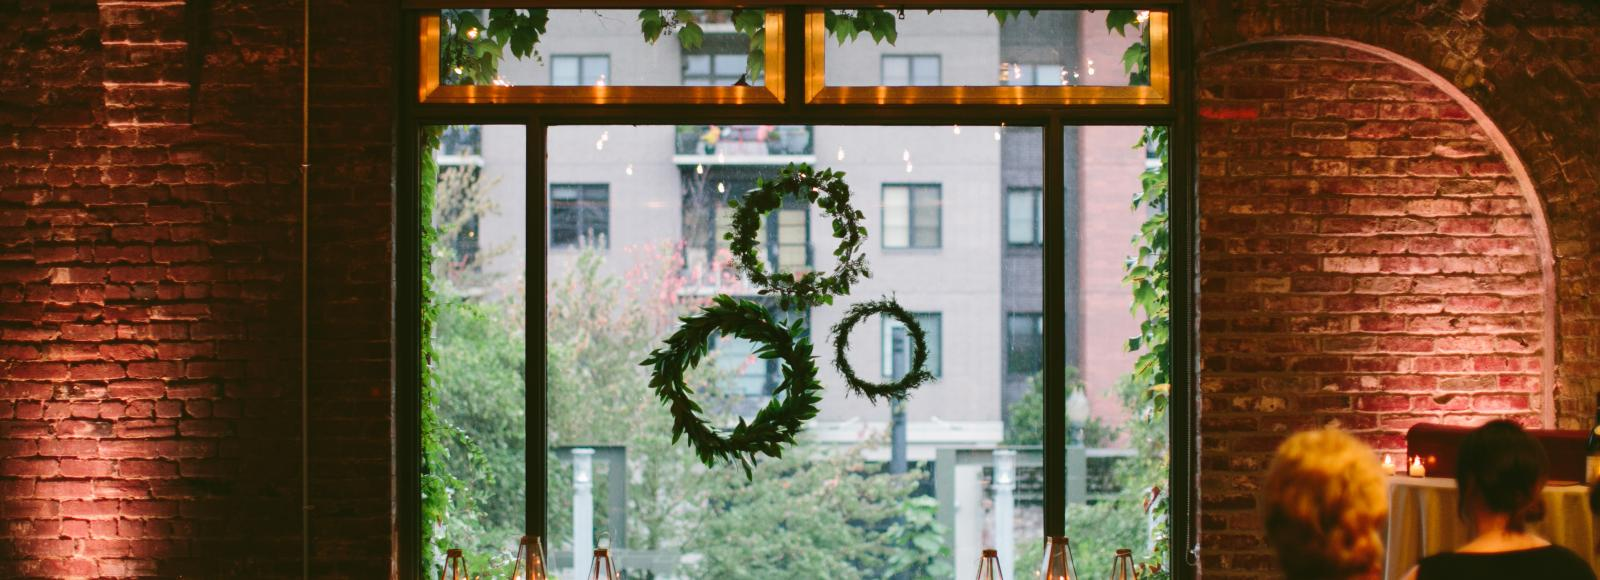 Window with wreaths and candles set up for a wedding ceremony in a historic conference room at the Ecotrust building in downtown Portland